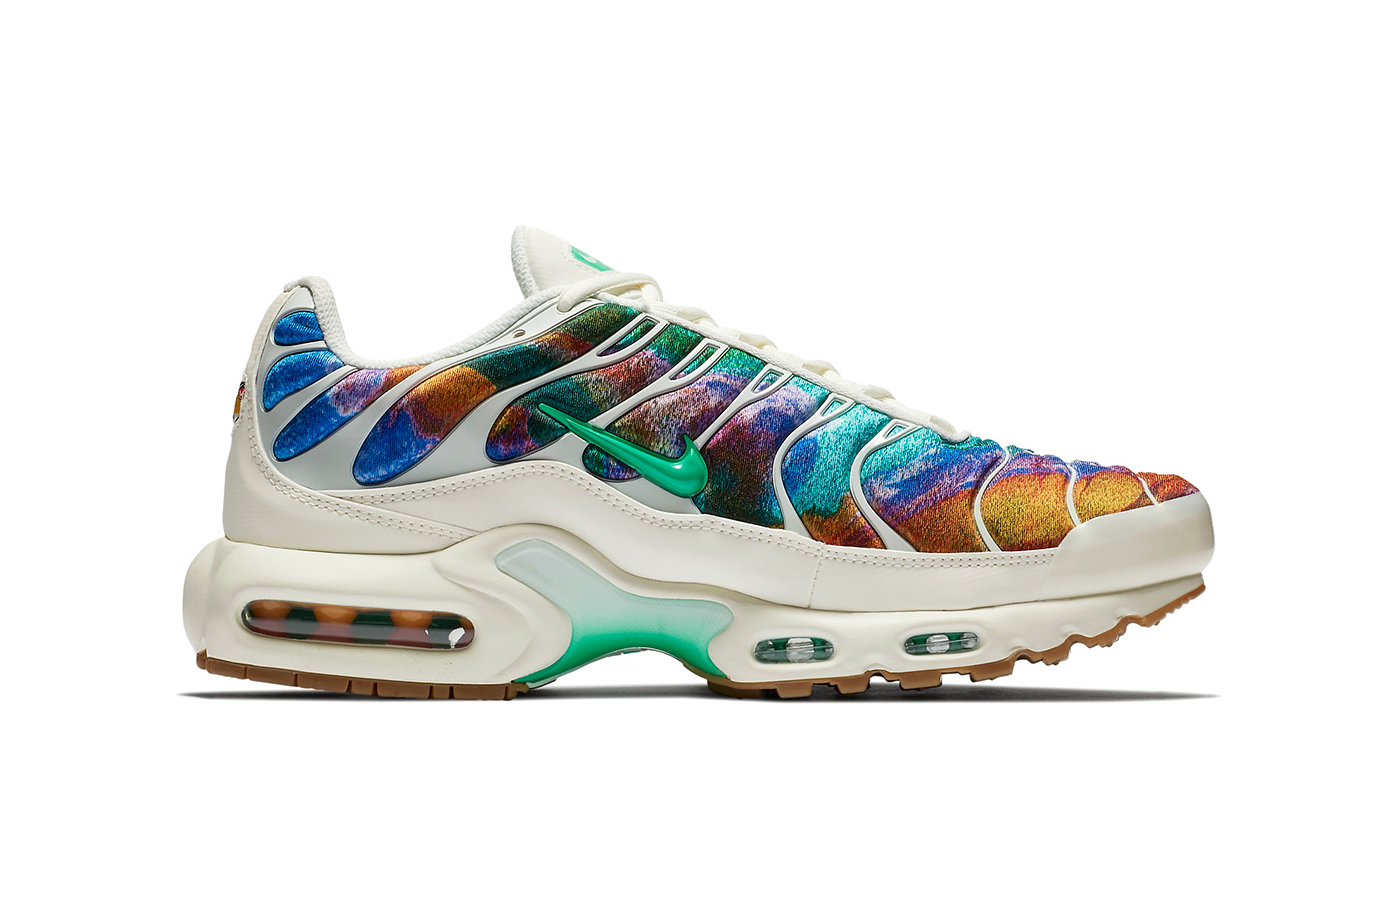 Nike Air Max Plus Alternate Galaxy Sail Hyper Crimson Menta release info sneakers footwear